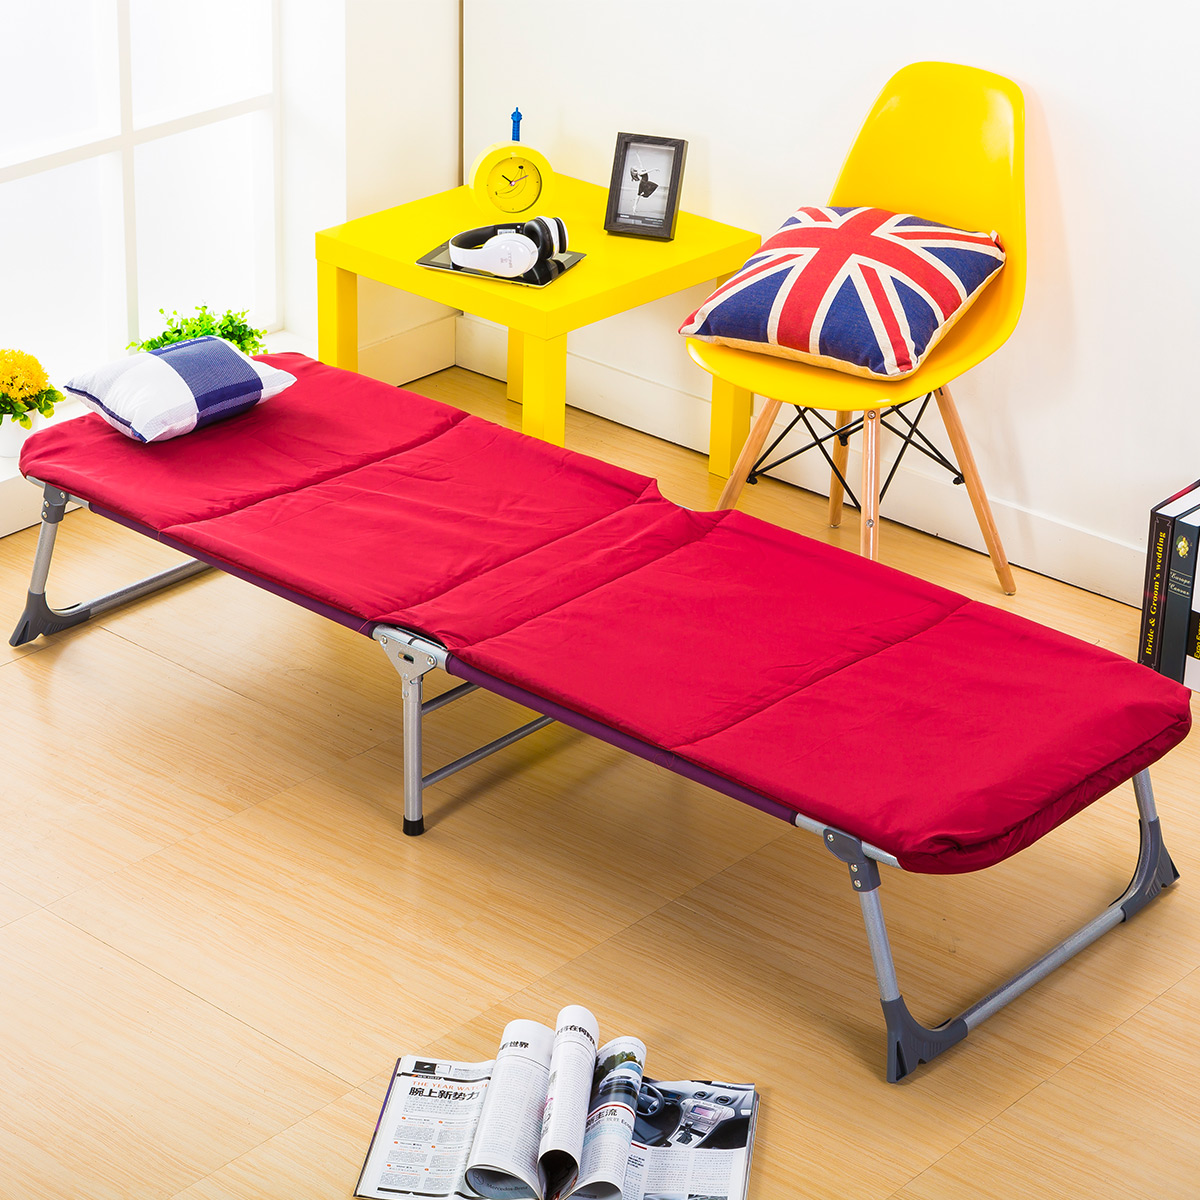 Us 194 85 16 Off New Arrives Simple Folding Bed Noon Break Leisure Household Office Lying Single Bed Outdoor Beach Balcony Sun Chairs In Beds From